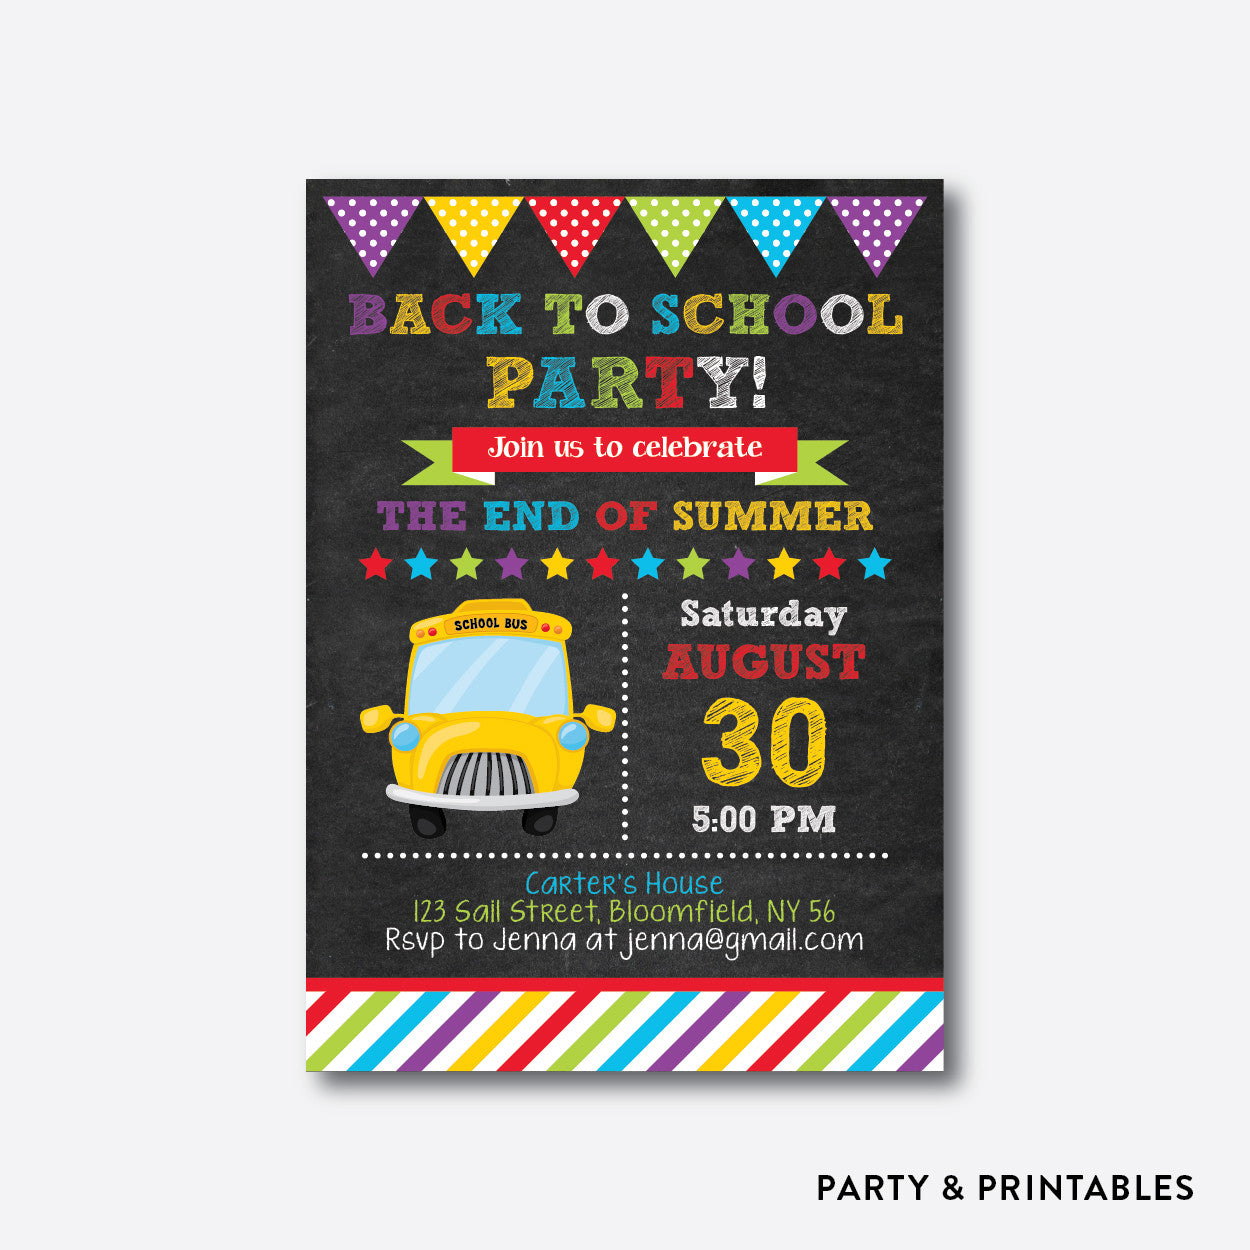 School Bus Chalkboard Back To School Party Invitation / Personalized (CBTS.03), invitation - Party and Printables